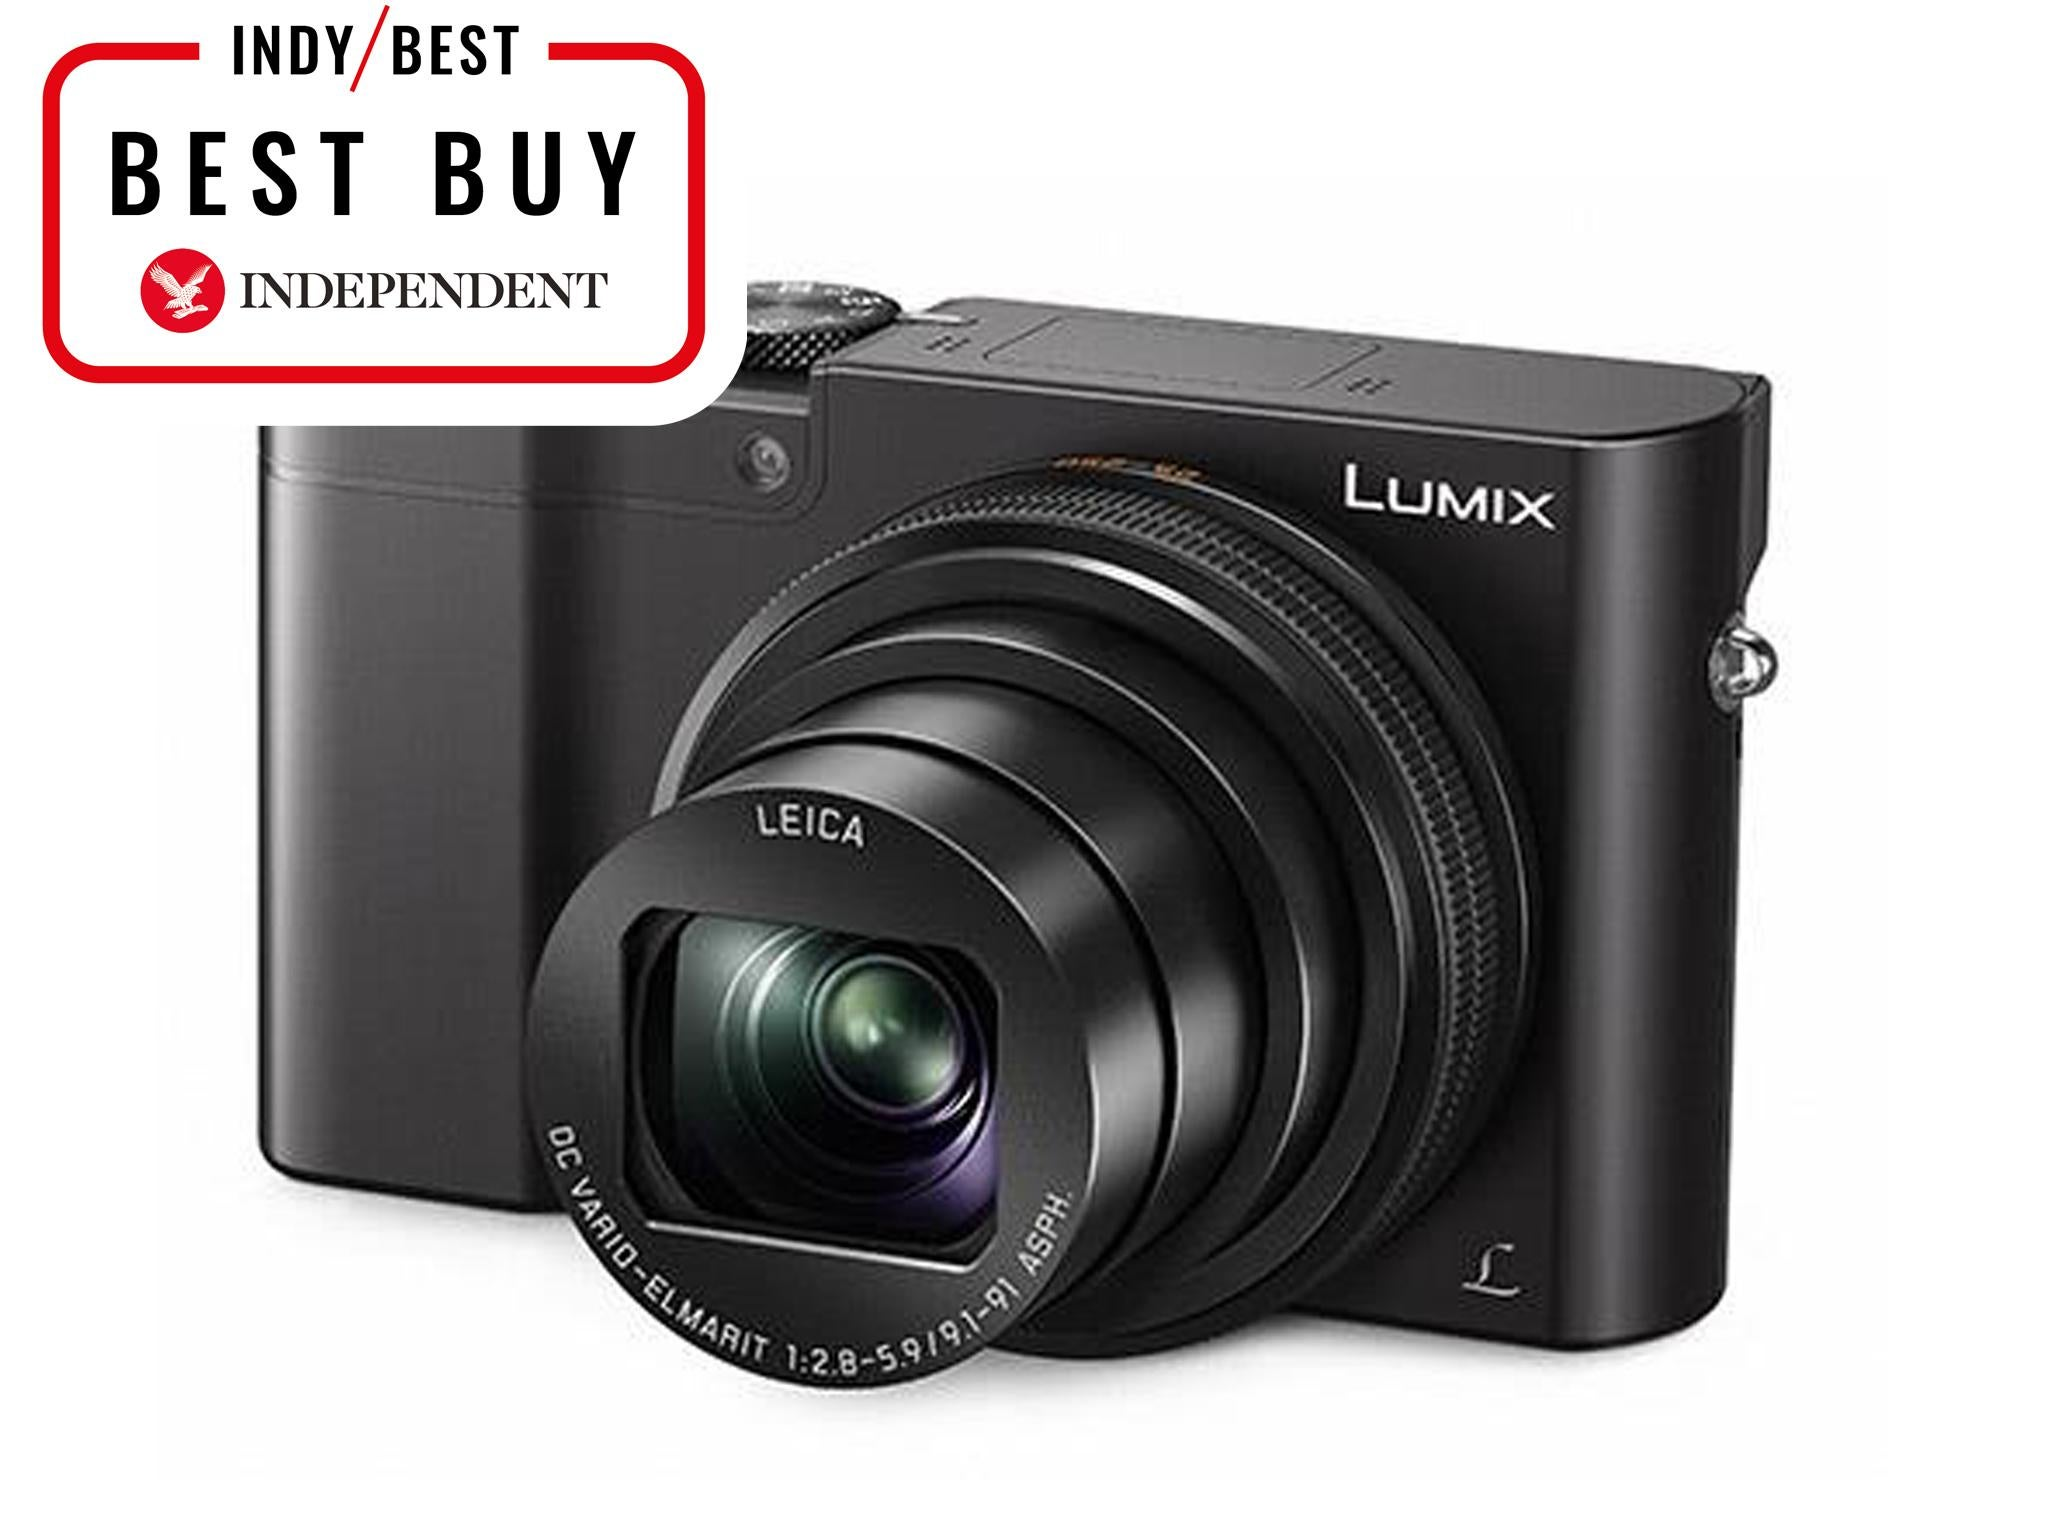 10 best compact cameras the independent rh independent co uk best digital camera for manual focus lenses Point a Camera On Manual Focus